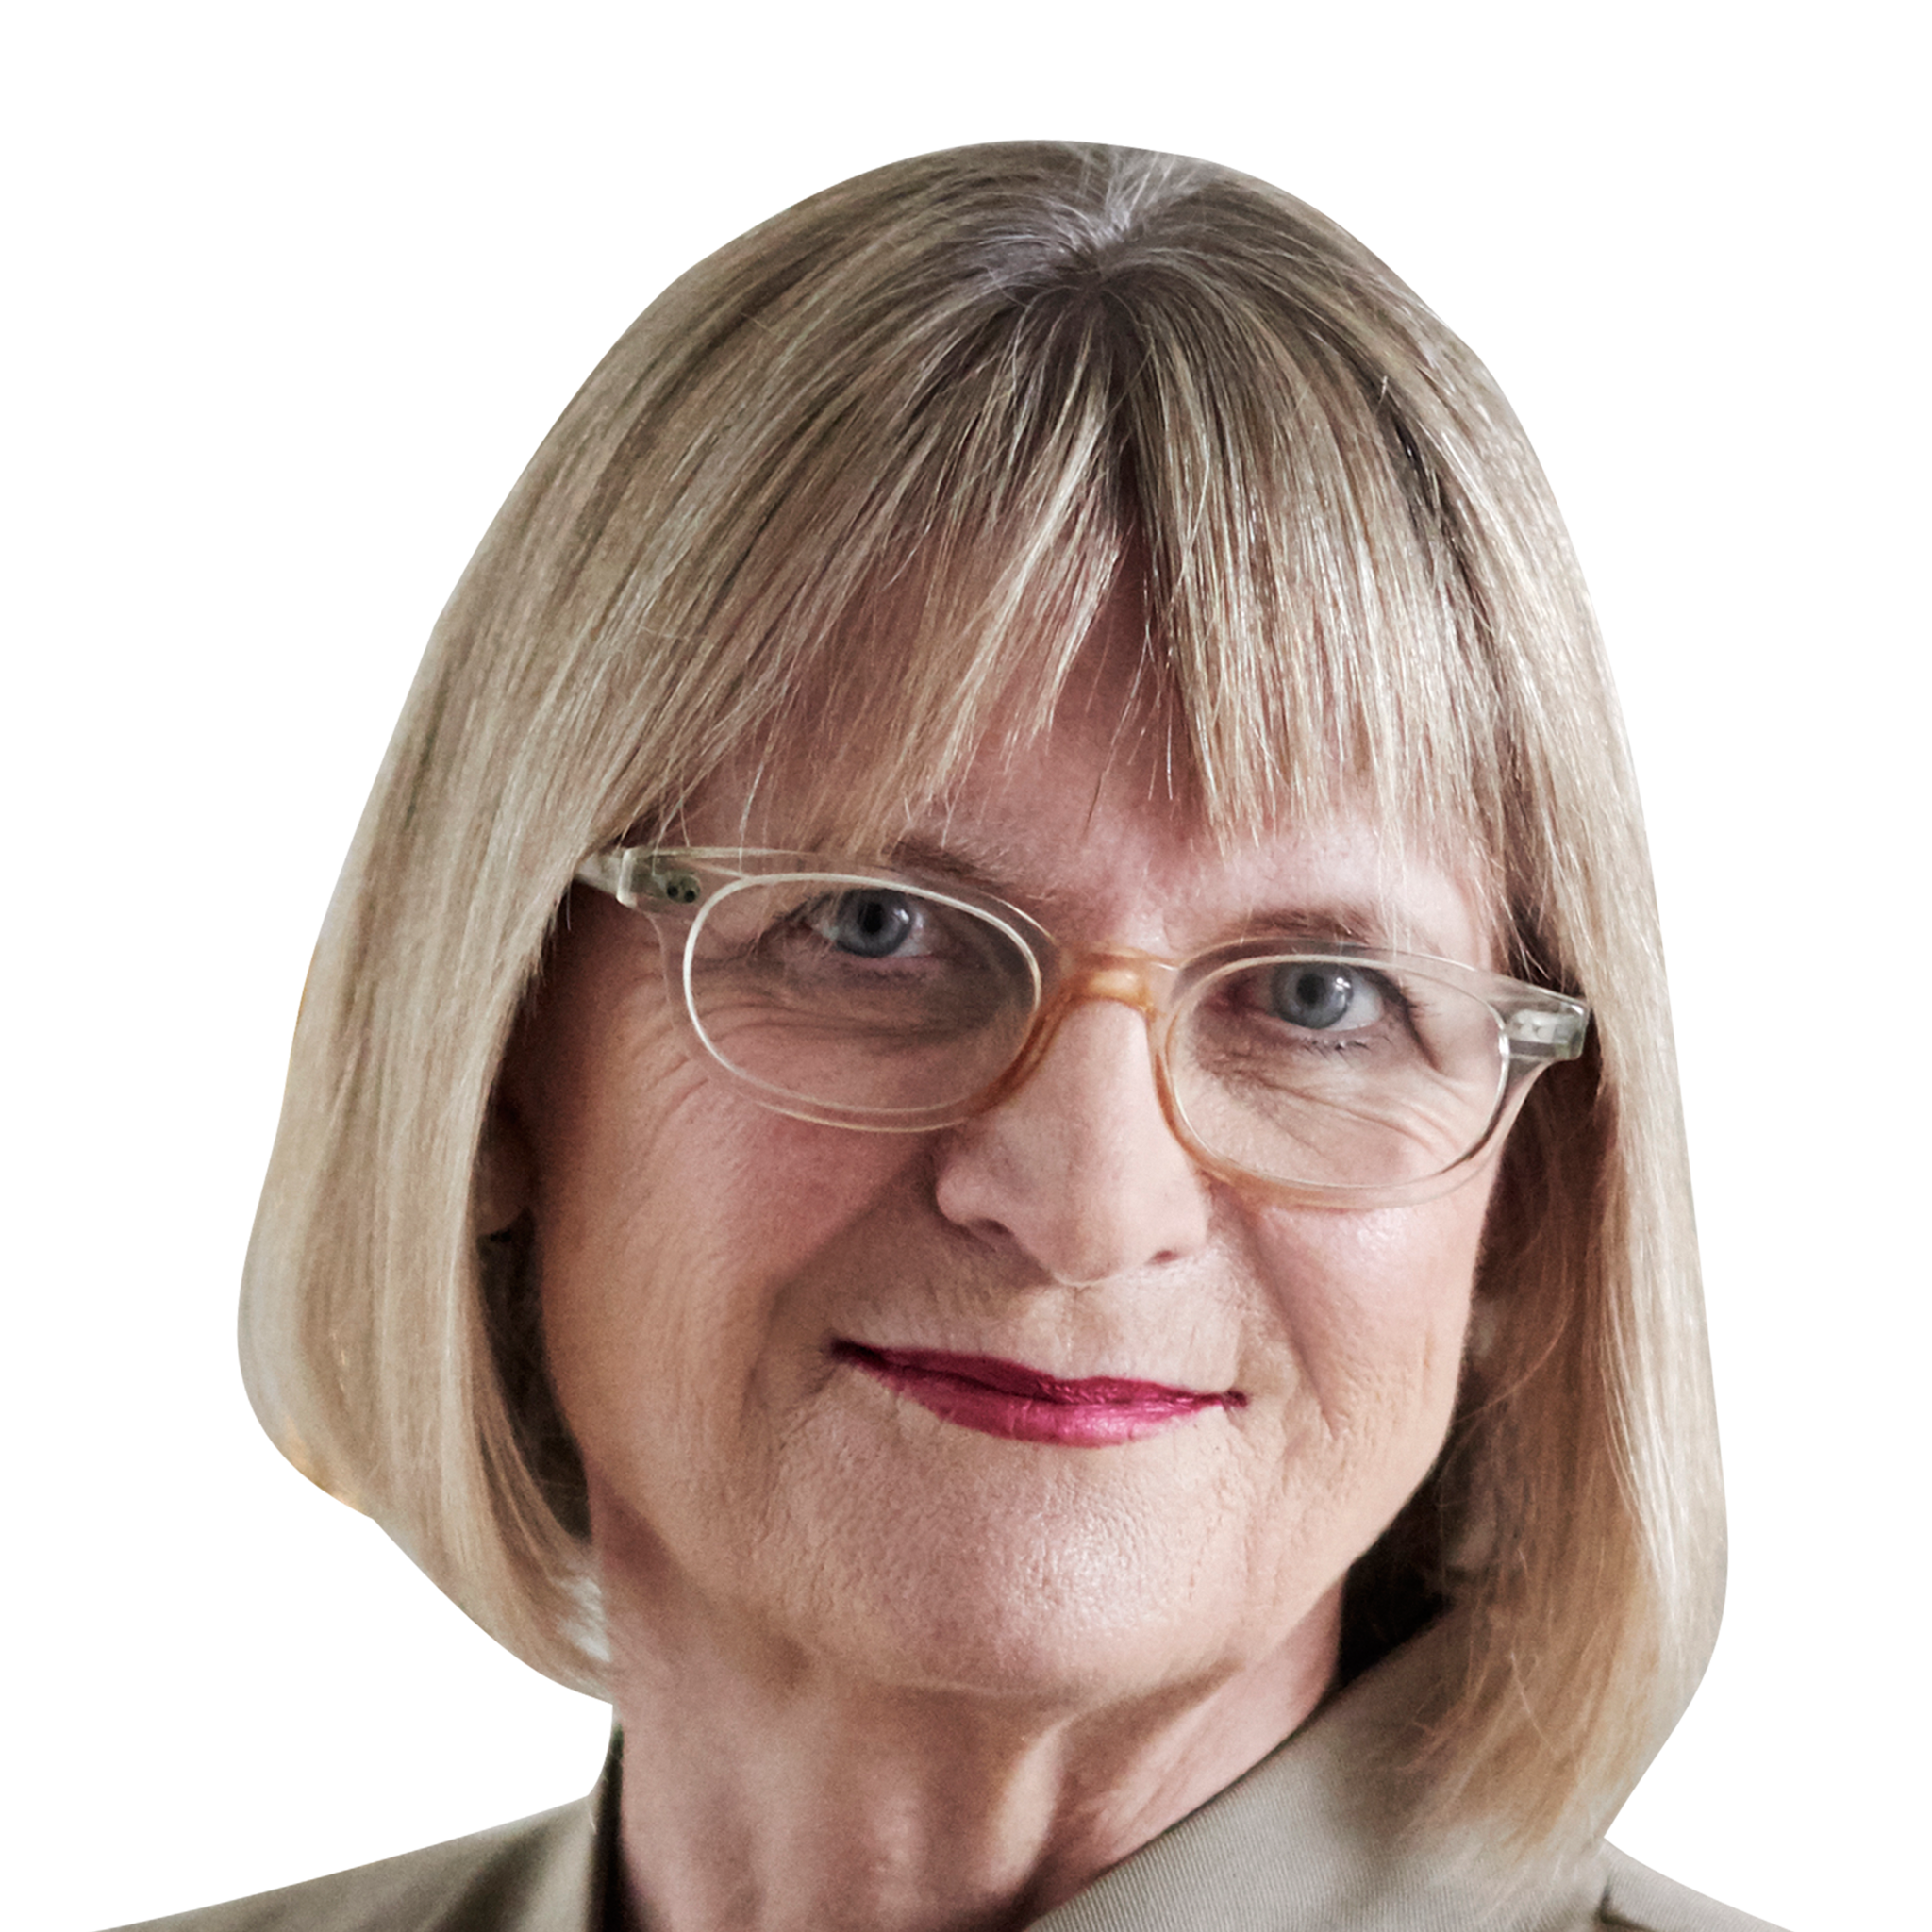 Image of Jancis Robinson